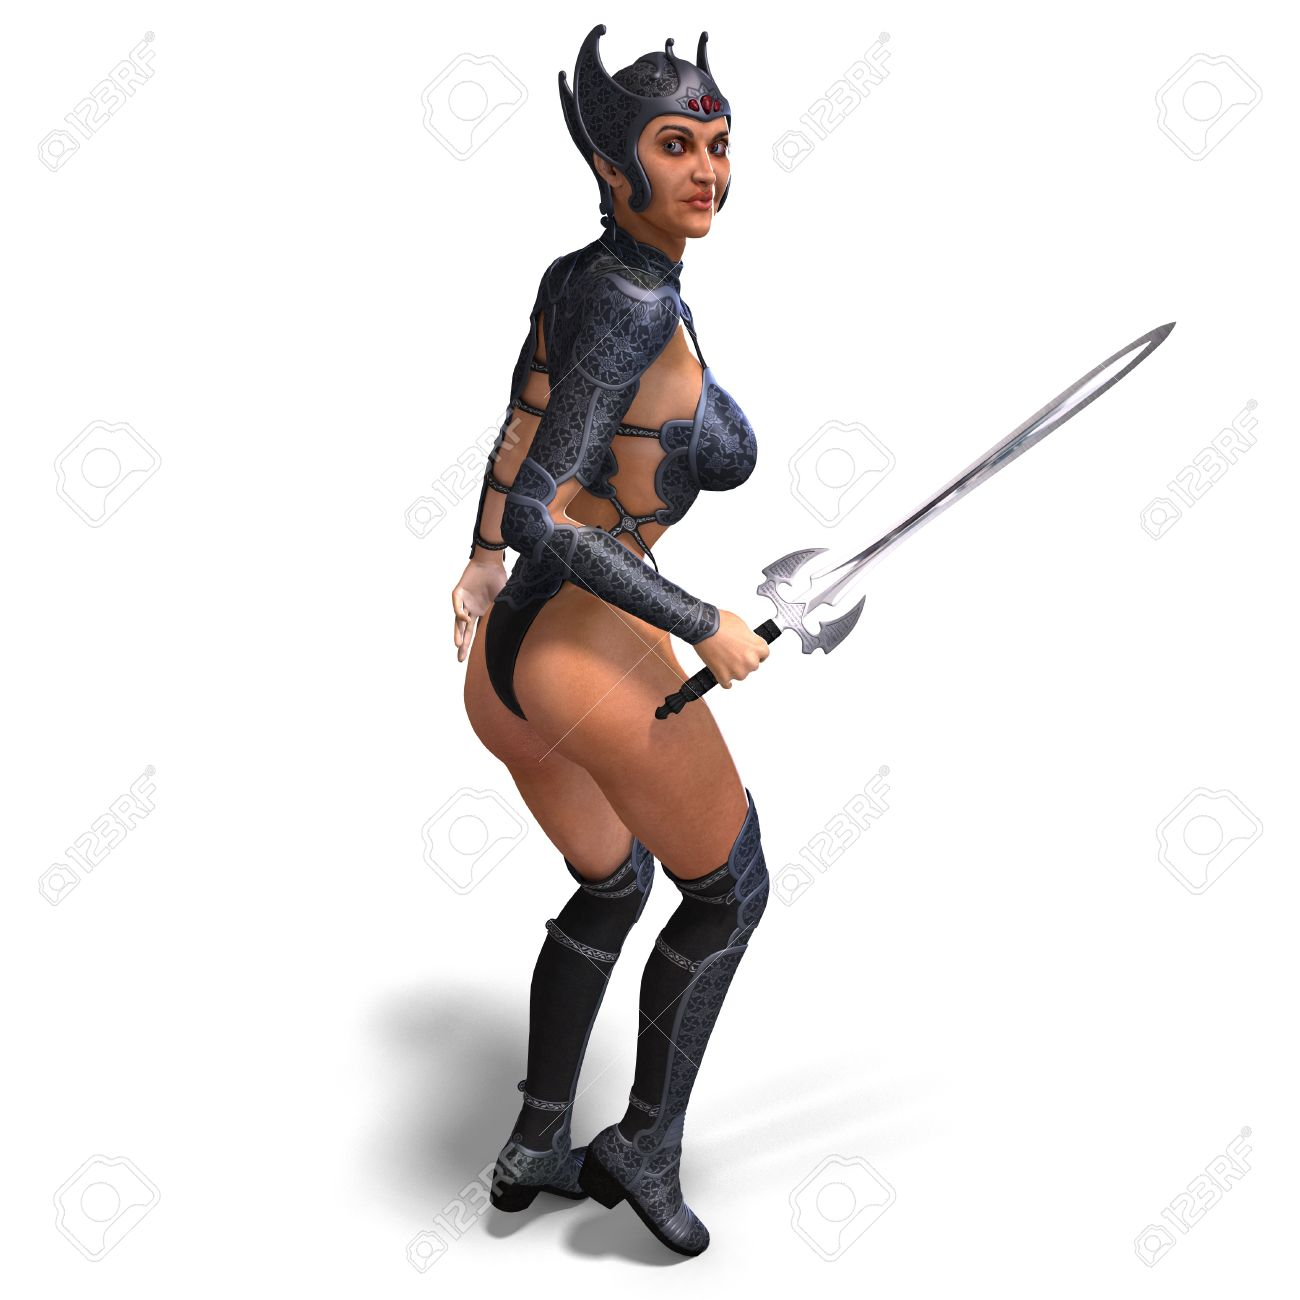 Female Amazon Warrior With Sword And Armor. 3D Rendering Stock.